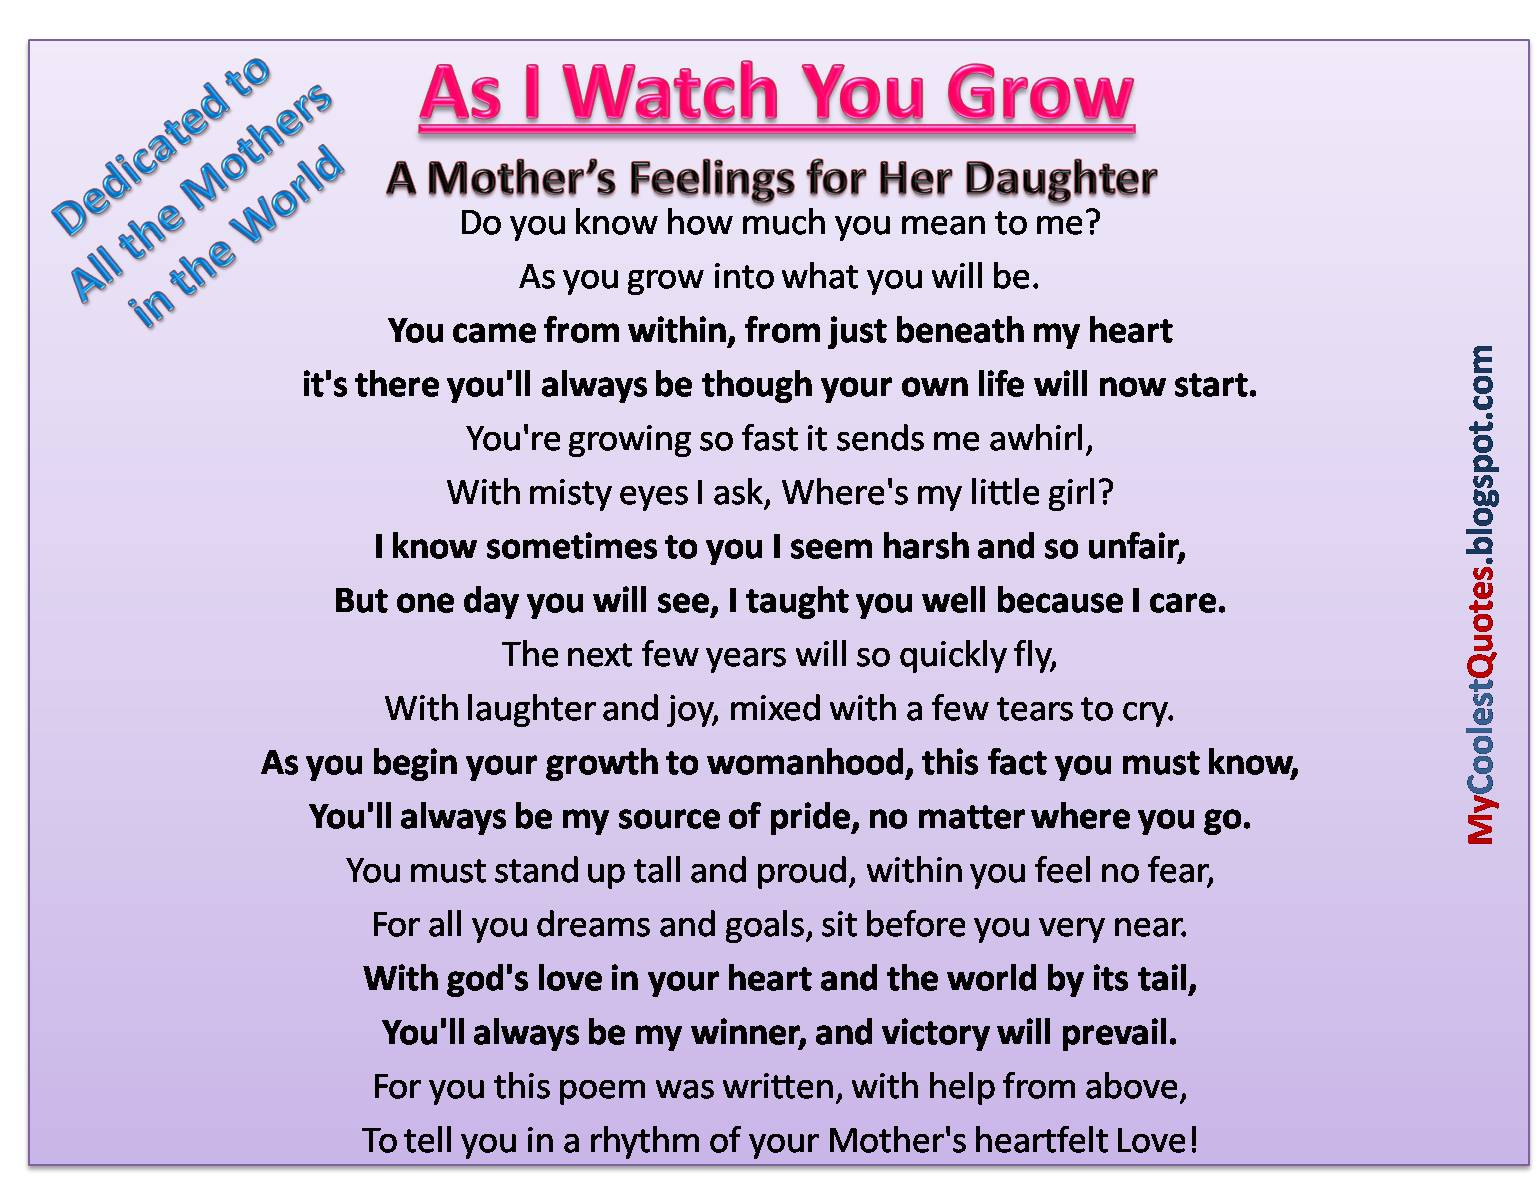 poems for mother and daughter relationship